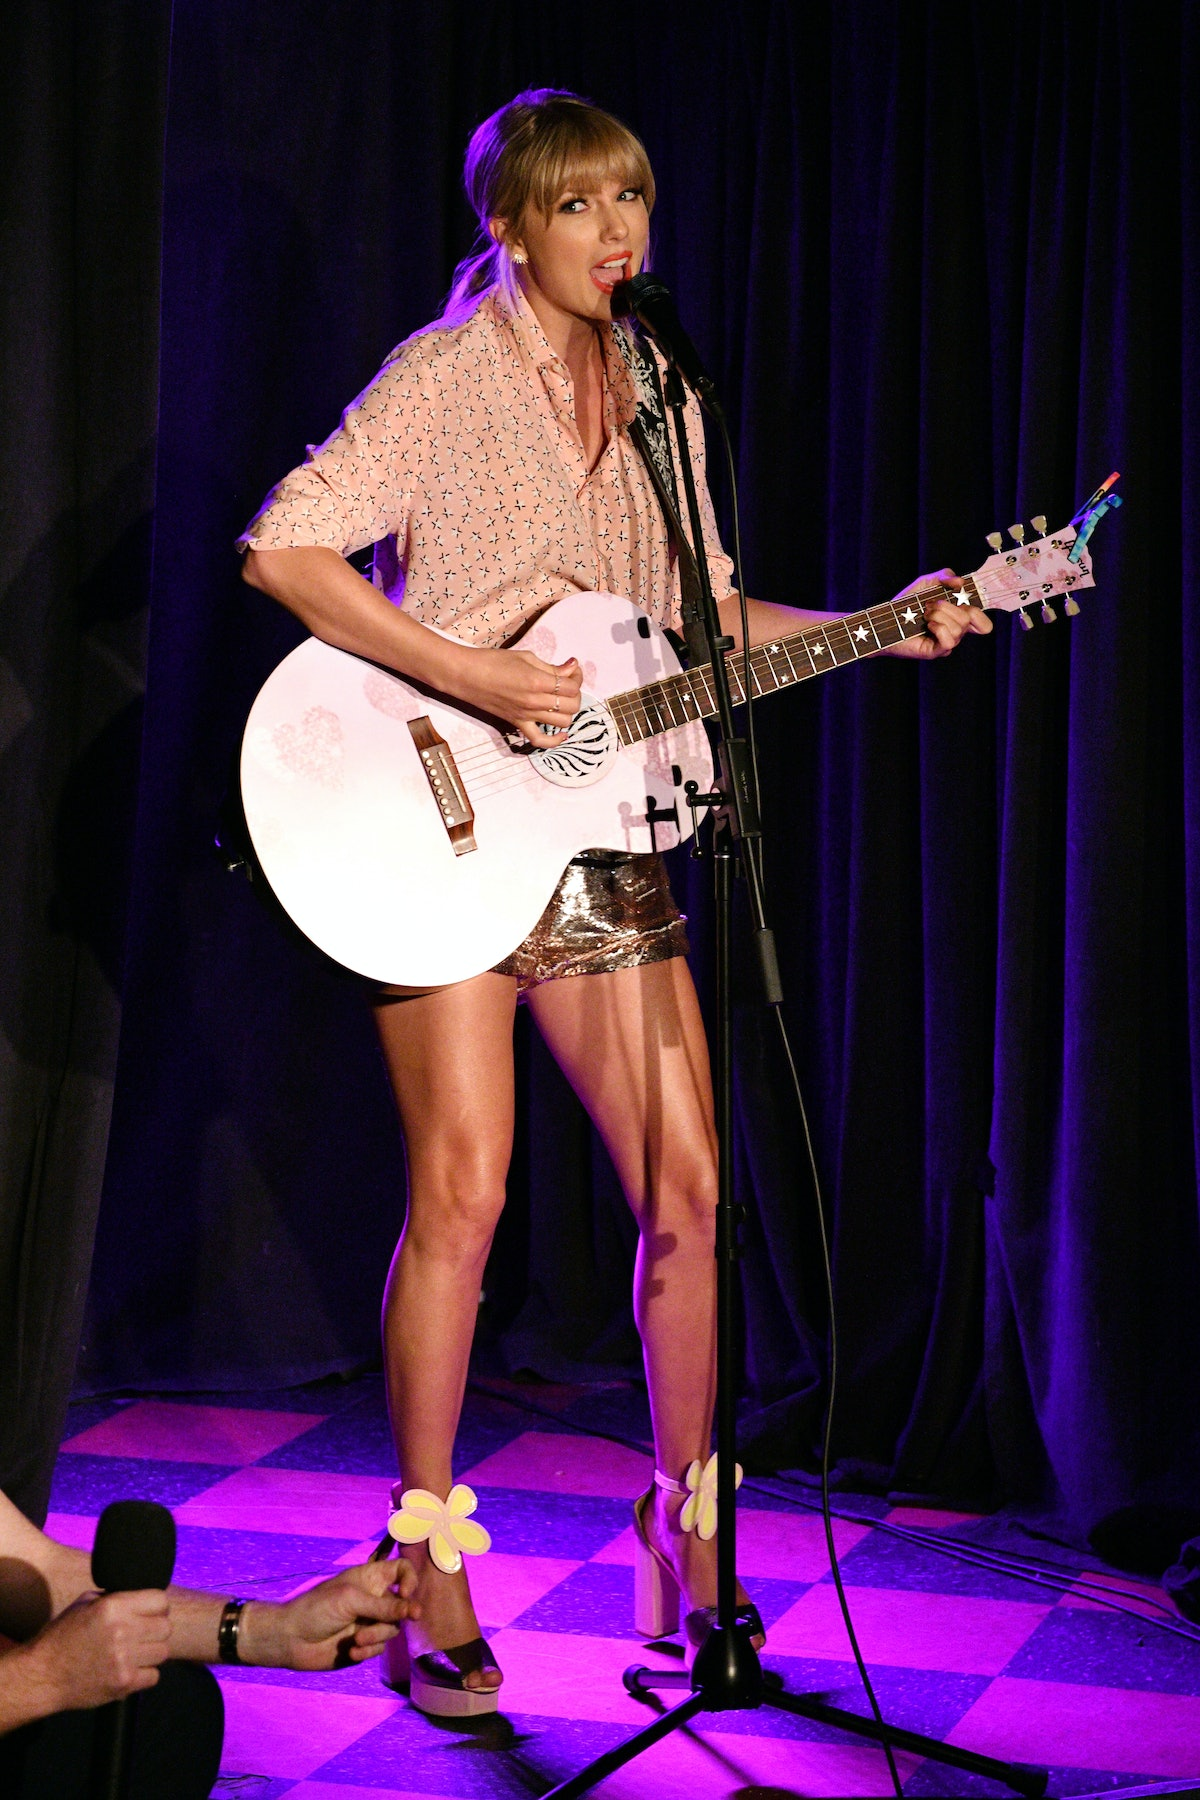 NEW YORK, NEW YORK - JUNE 14: Taylor Swift performs at AEG and Stonewall Inn's pride celebration commemorating the 50th anniversary of the Stonewall Uprising. AEG has pledged its support to SIGBI's development of an LGBTQ+ anti-bias training standard. #EqualityForAll #BetterAsOne (Photo by Bryan Bedder/Getty Images for AEG)